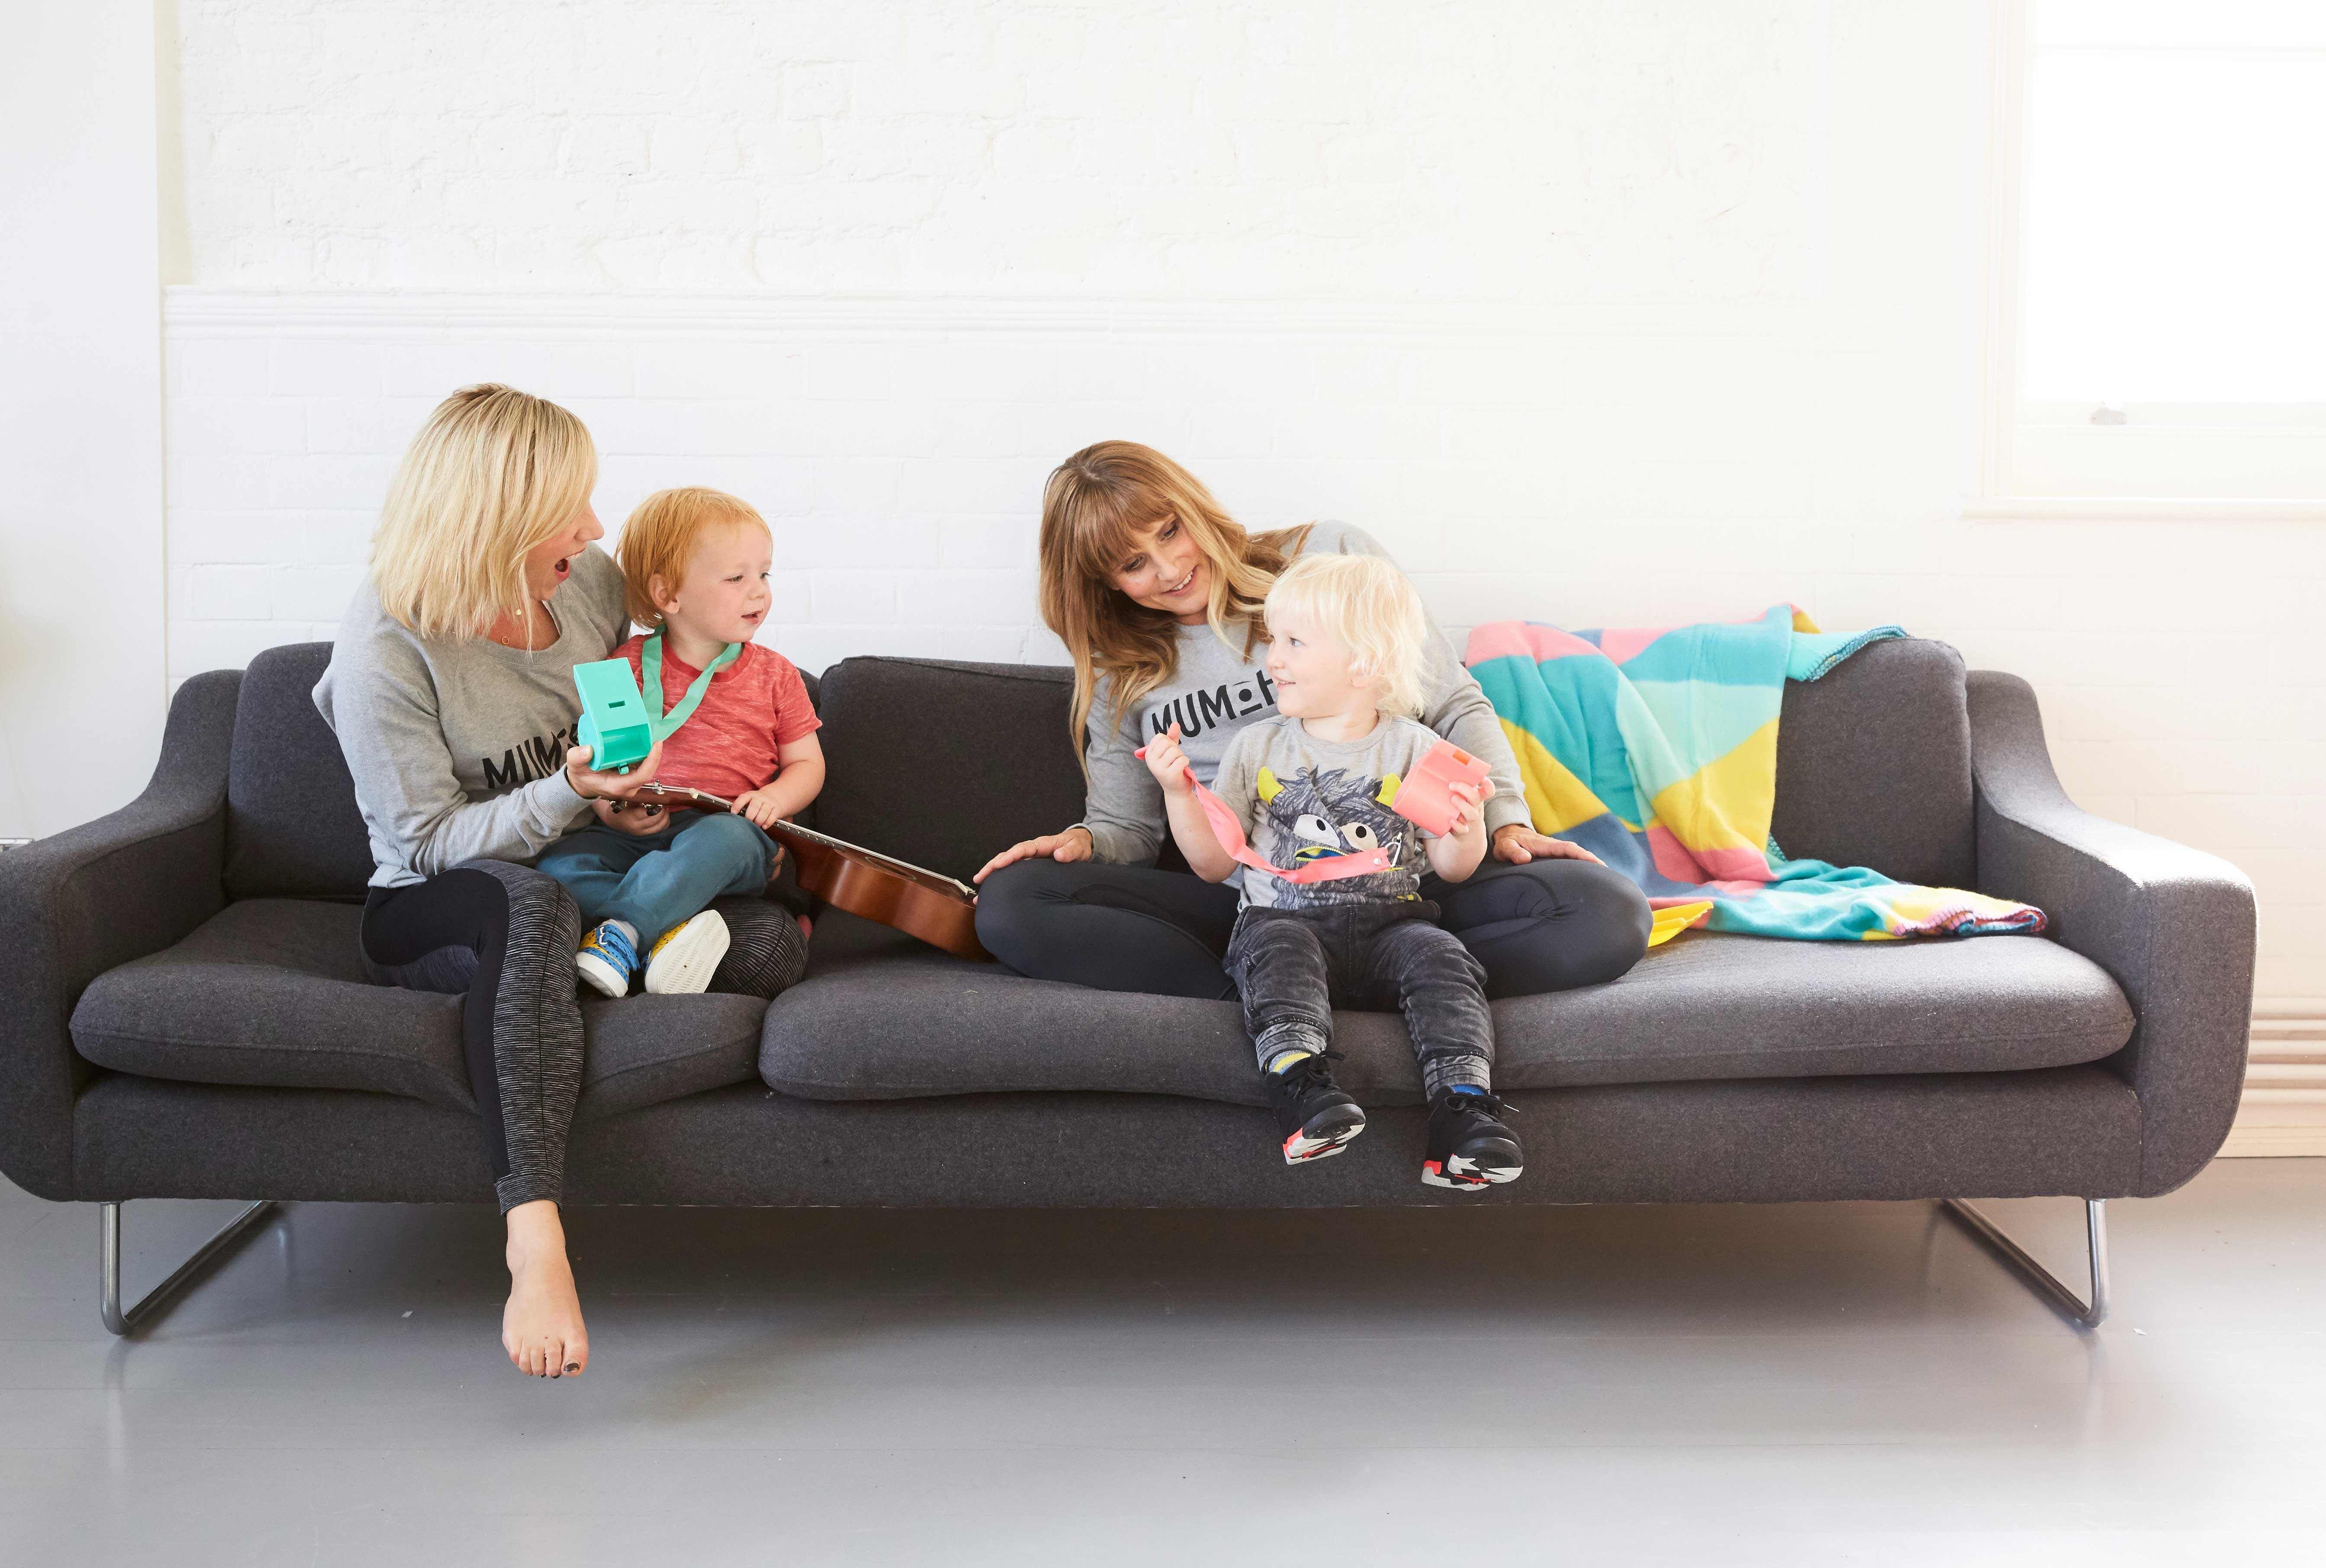 Want to get fit? Try Frame's new Mumhood programme